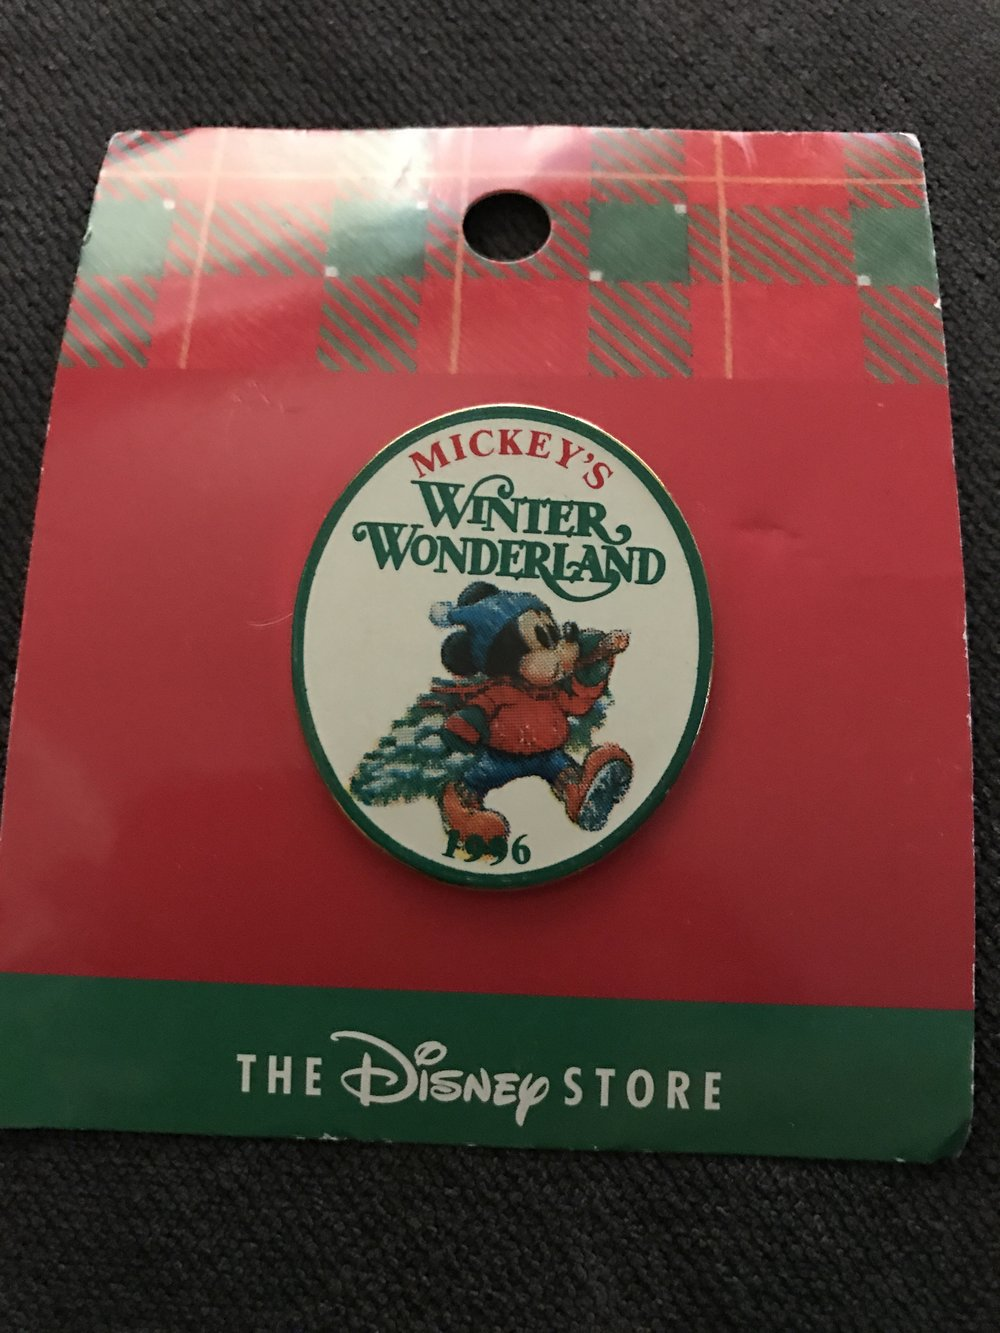 Disney Store Christmas pin - 1996